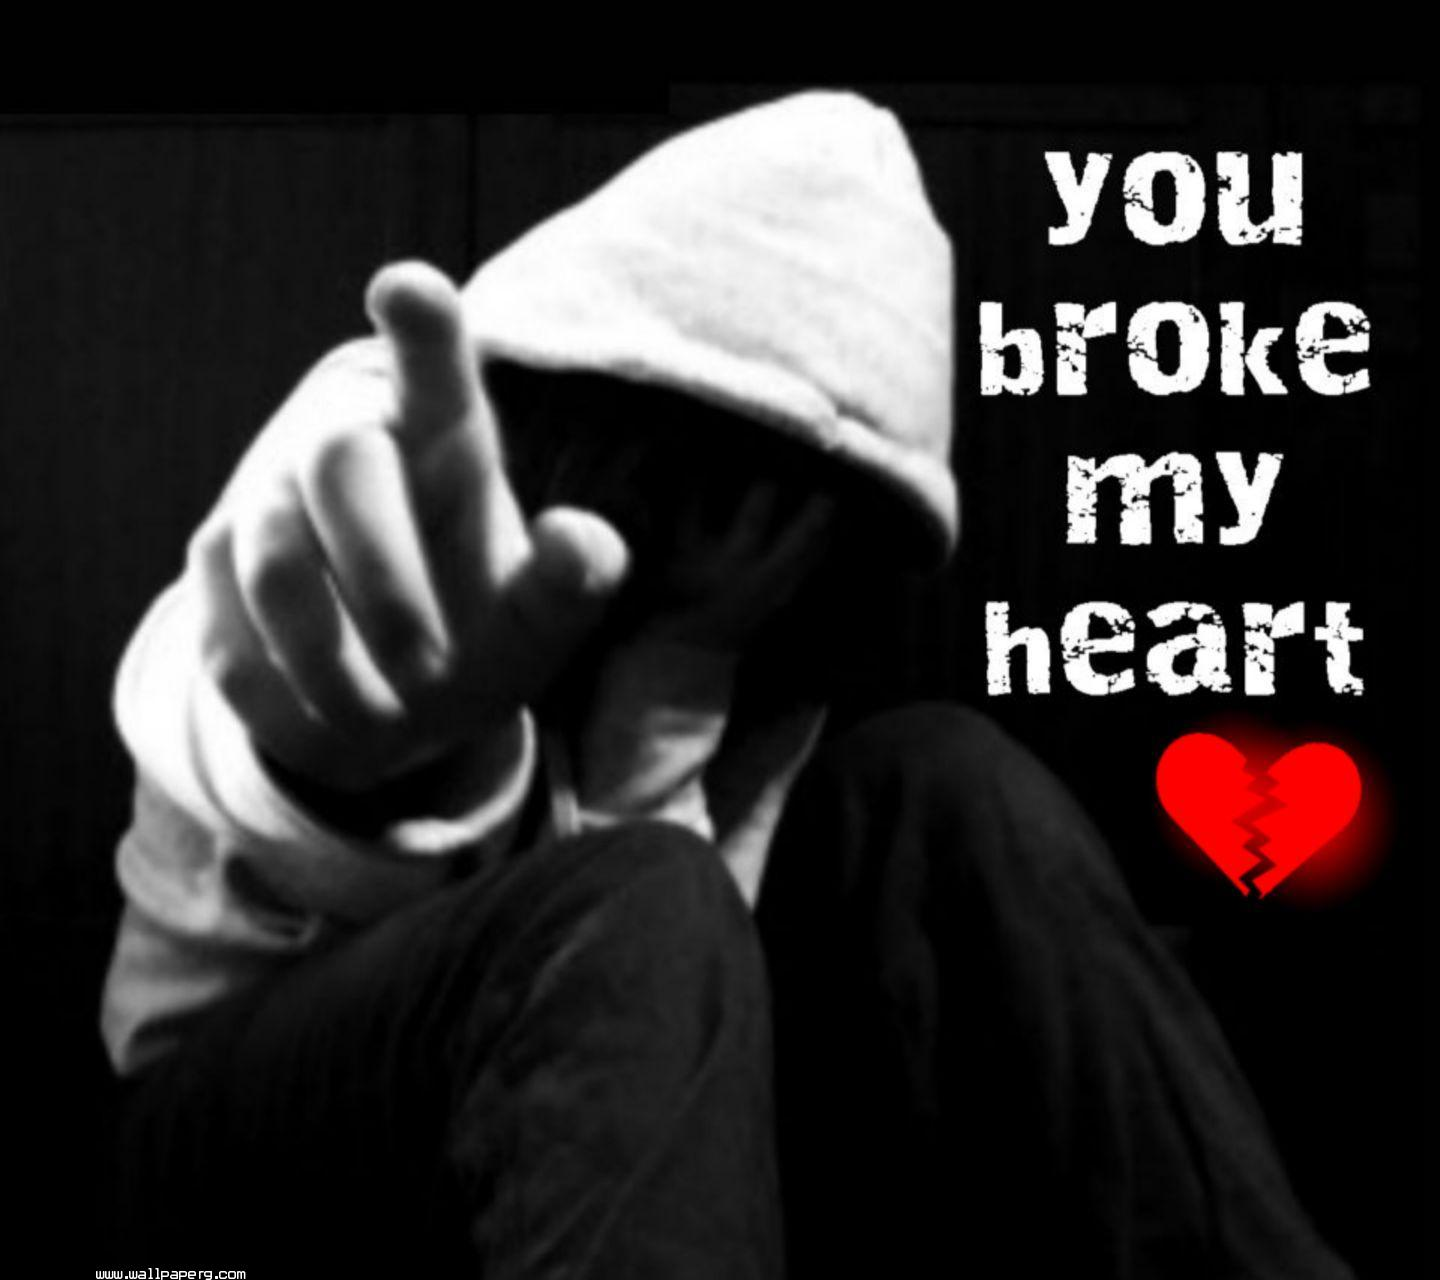 Download broken heart 3 hurt wallpapers for your mobile - Sad heart wallpapers love ...